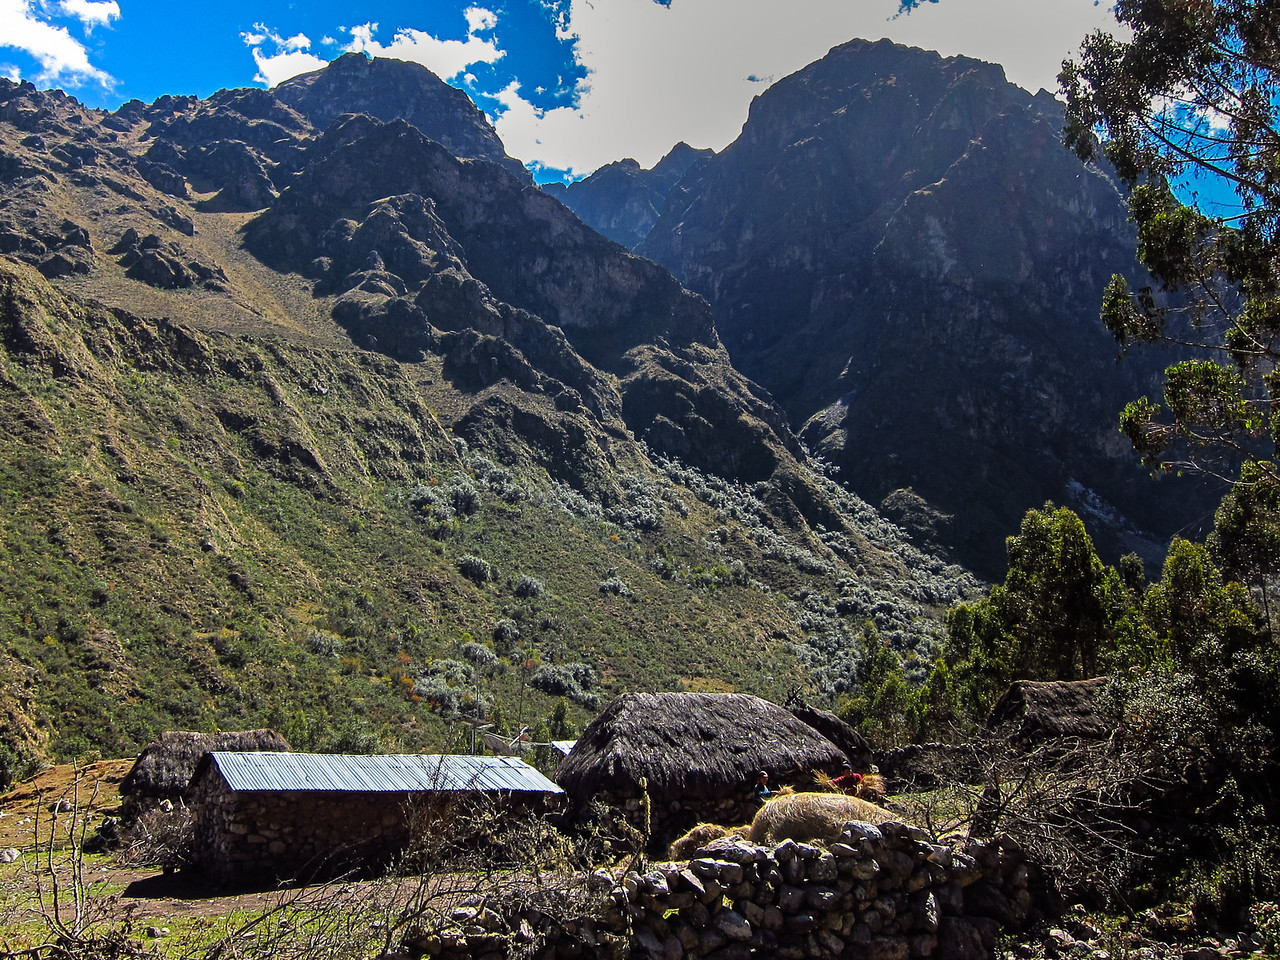 Small village in the Pumahuanca Valley. These villagers own the entire valley.